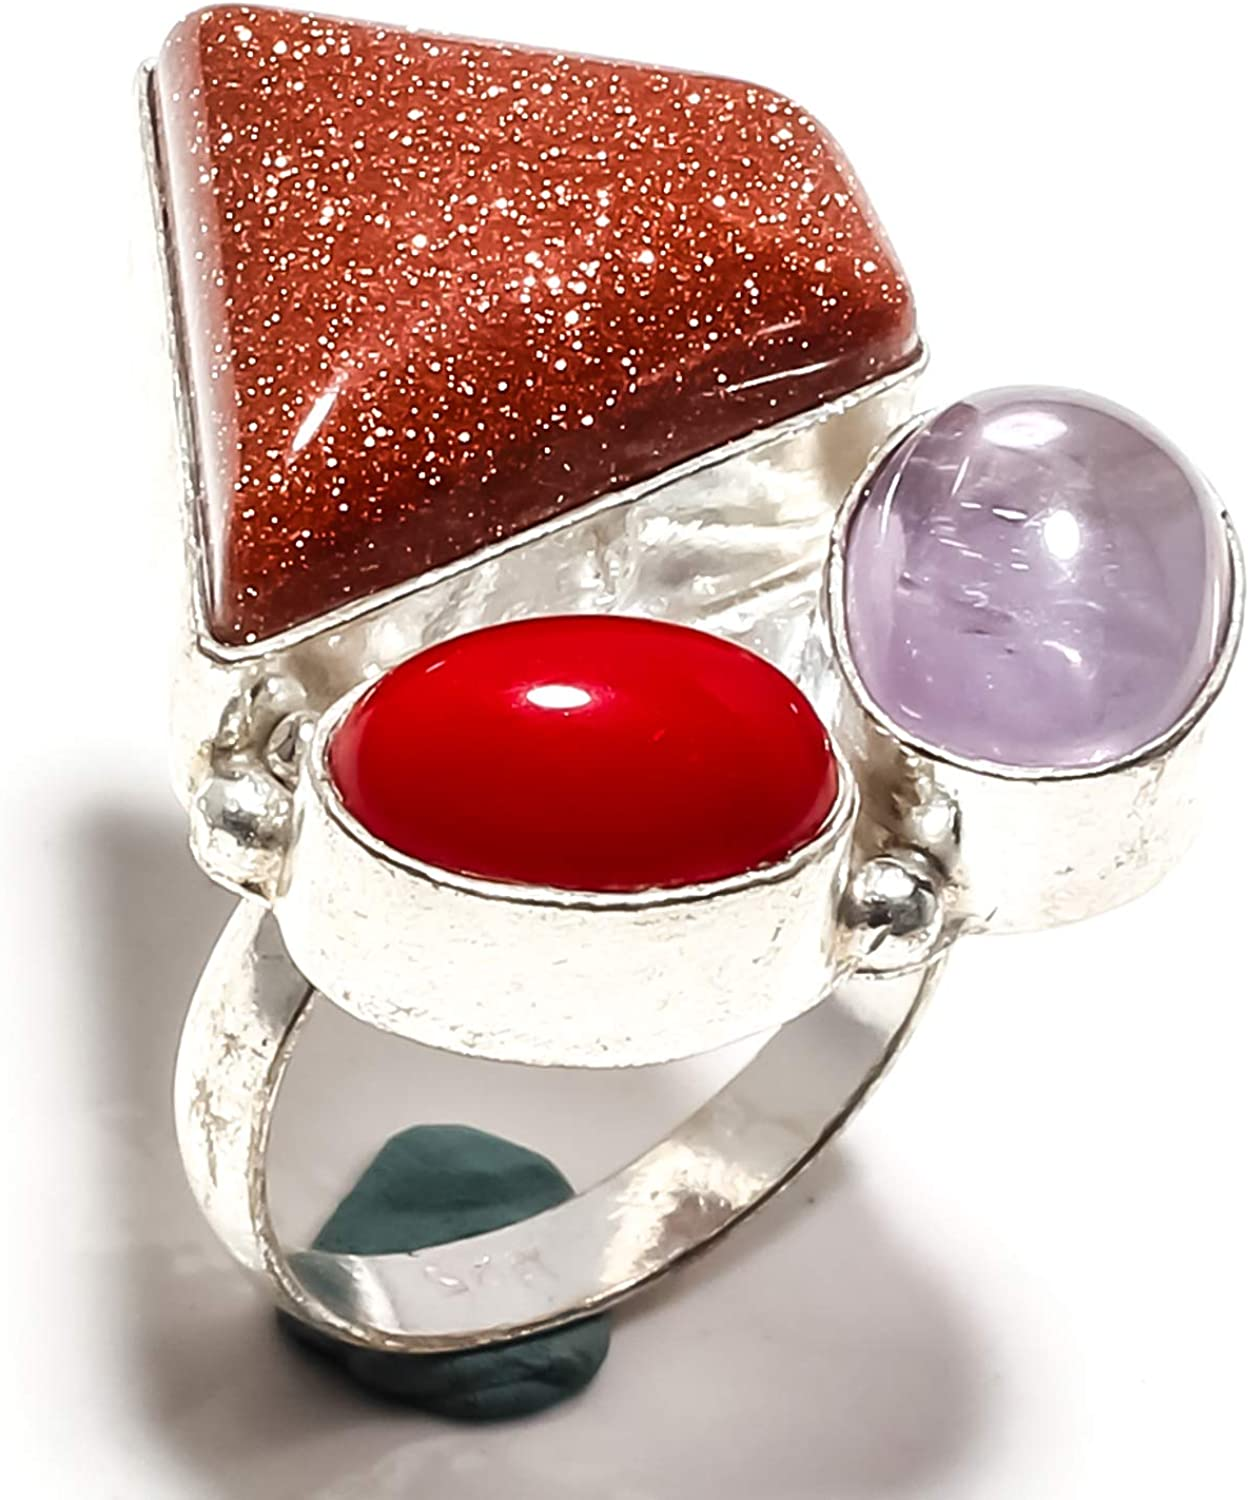 jewelsworld Red Sunstone /& Red Coral,Amethyst SageGemstone Ring Handmade 925 Sterling Silver Plated Jewelry -Statement Ring - - Ring Size - 8 US SF-1860